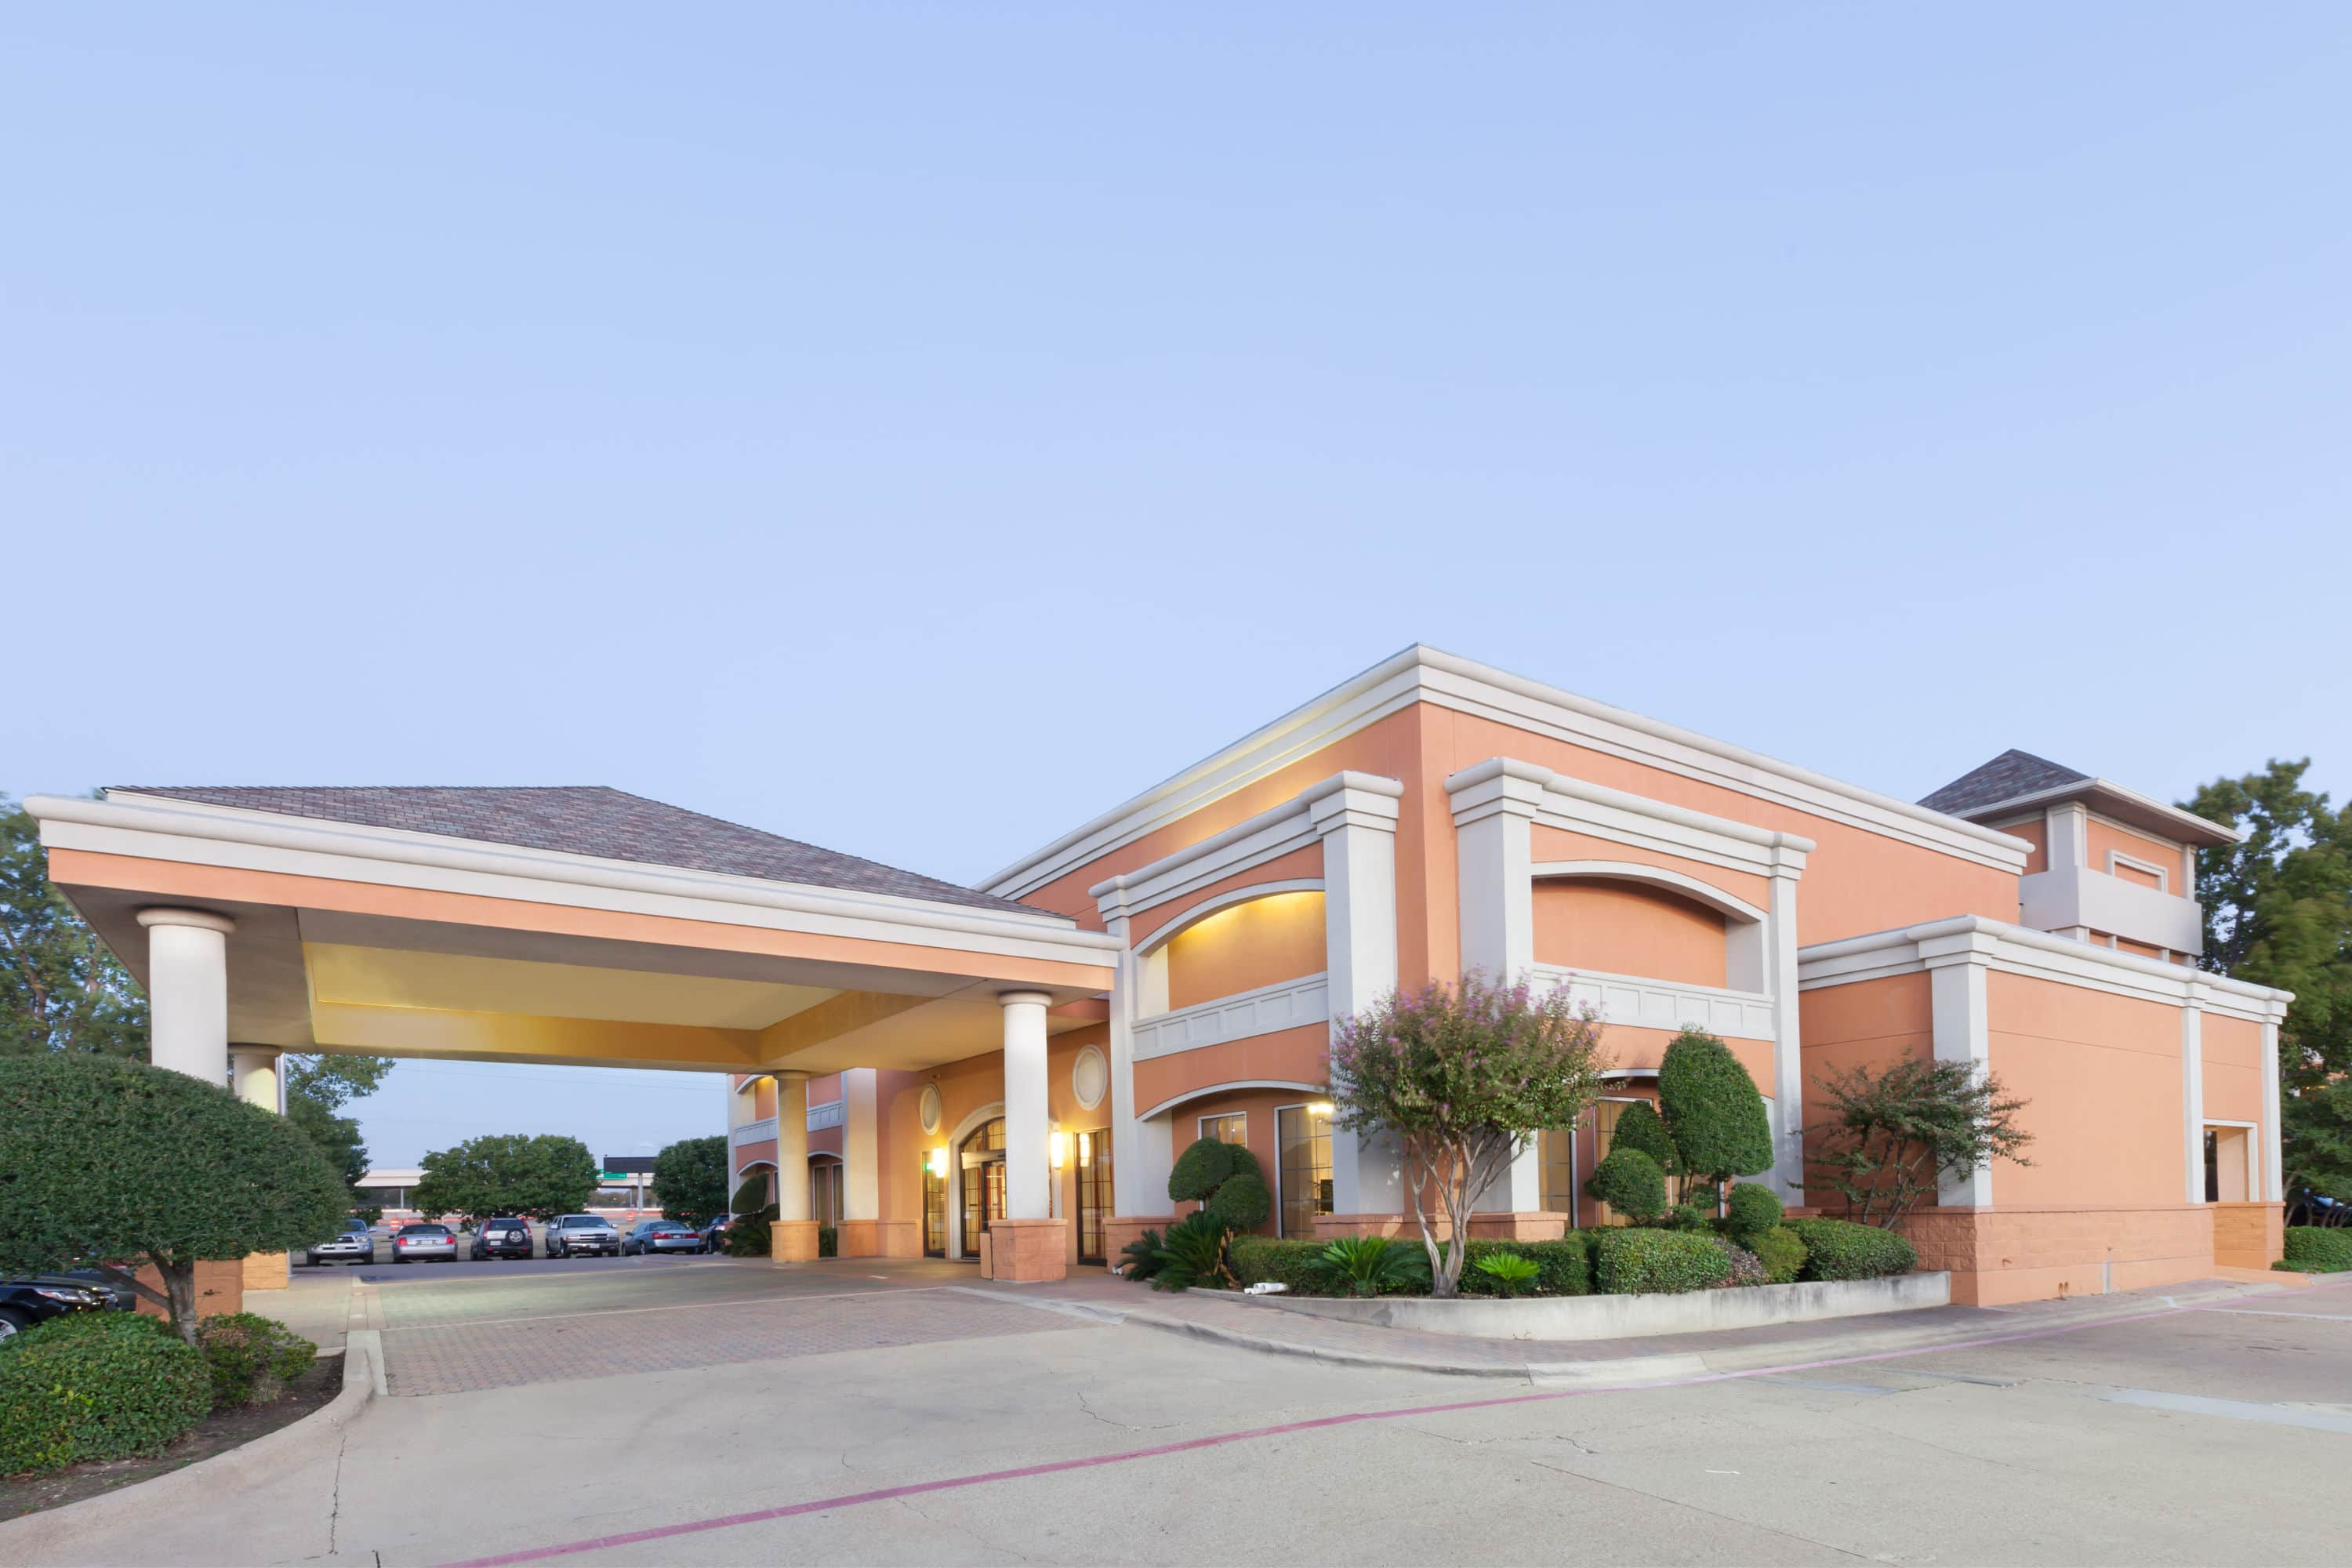 Dallas Airport Hotels >> Days Inn By Wyndham Irving Grapevine Dfw Airport North